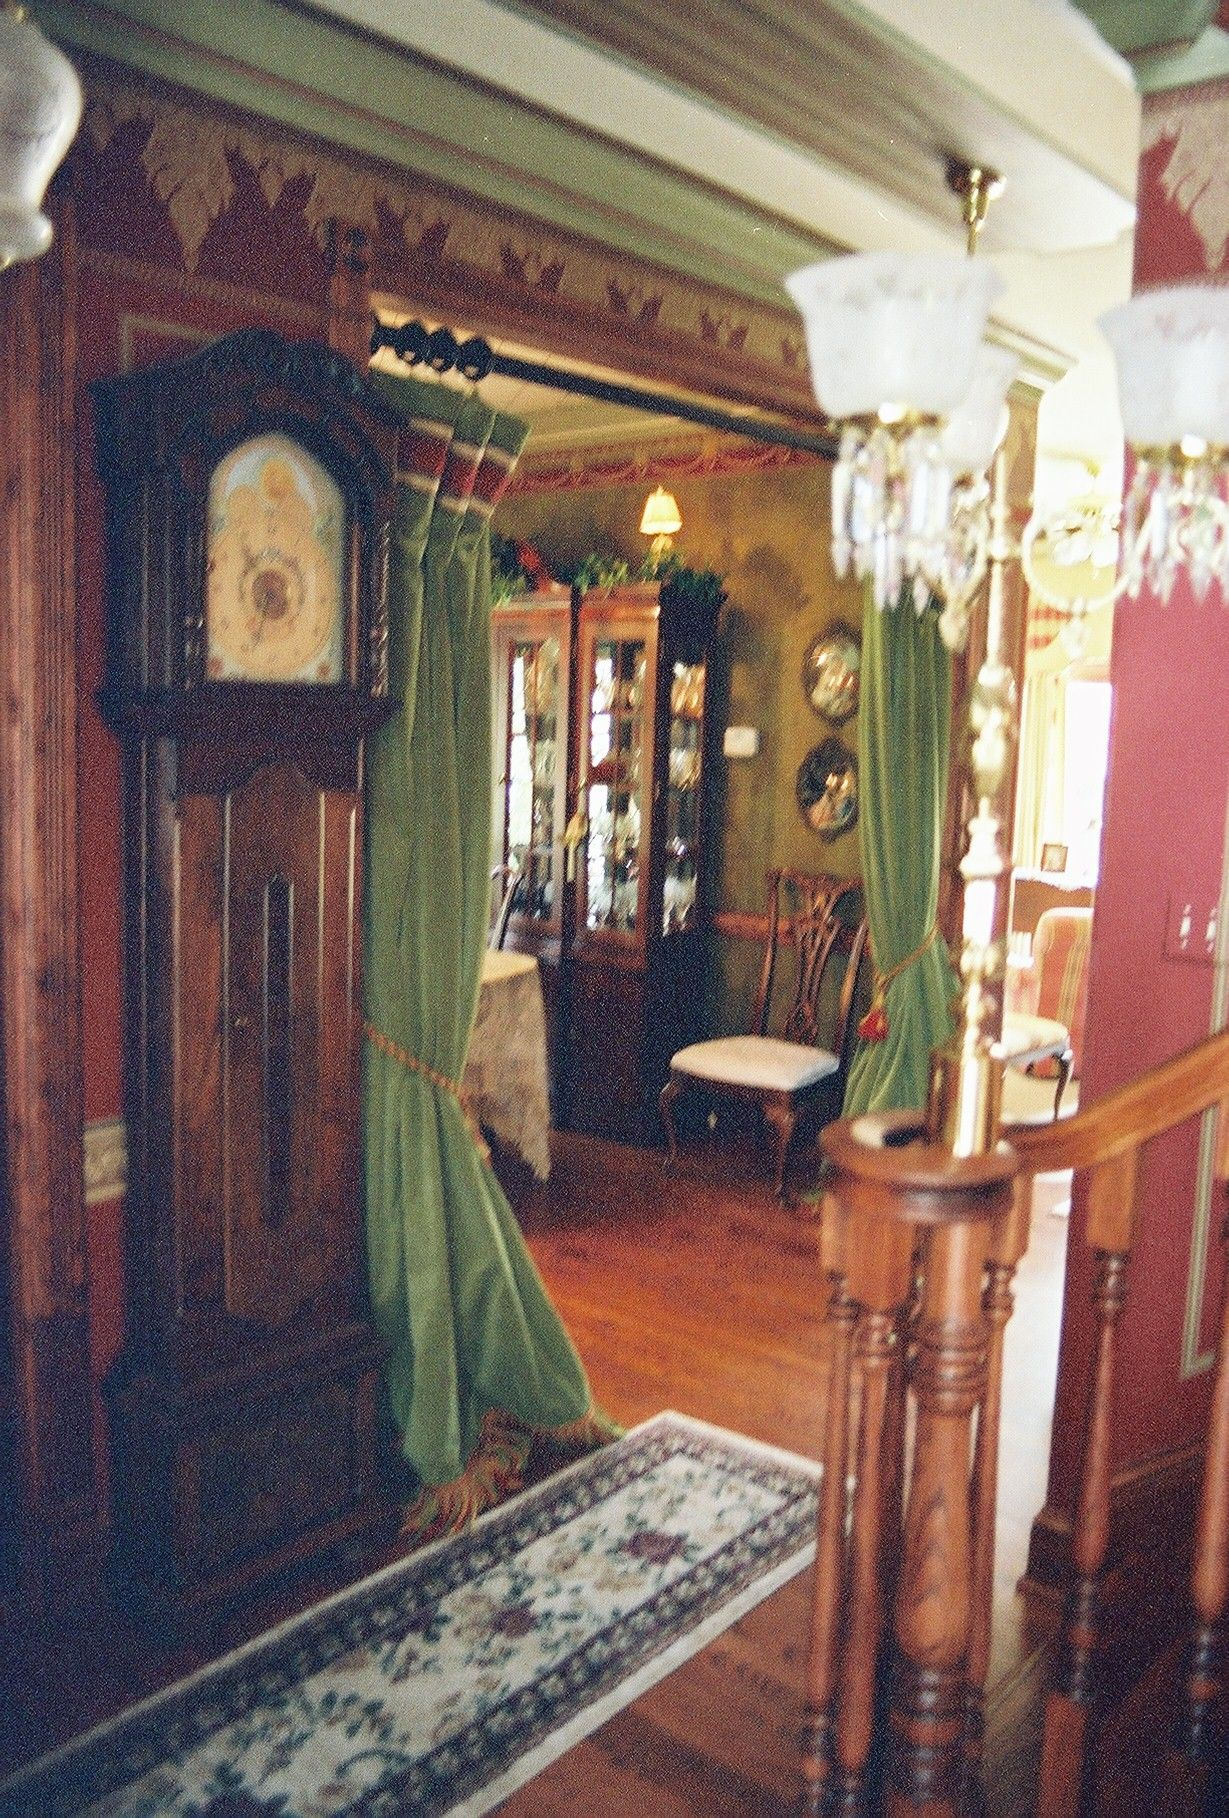 High Victorian Velvet Pole Drapes offer closure to Dining Room.